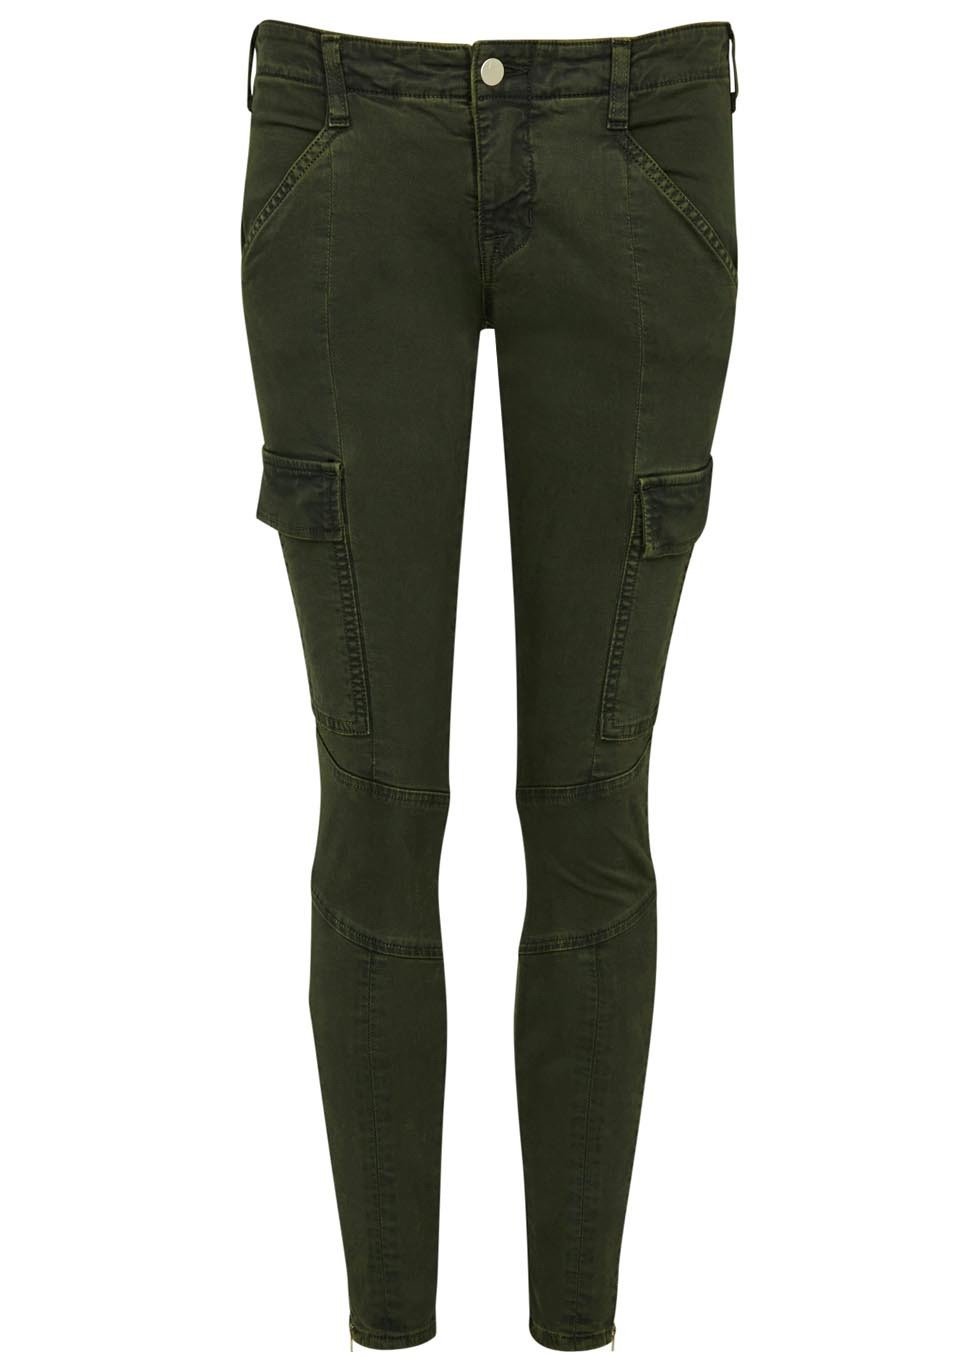 Houlihan Army Green Skinny Cargo Trousers - pattern: plain; waist: mid/regular rise; style: cargo; predominant colour: dark green; occasions: casual; length: ankle length; fibres: cotton - stretch; fit: skinny/tight leg; pattern type: fabric; texture group: woven light midweight; season: s/s 2016